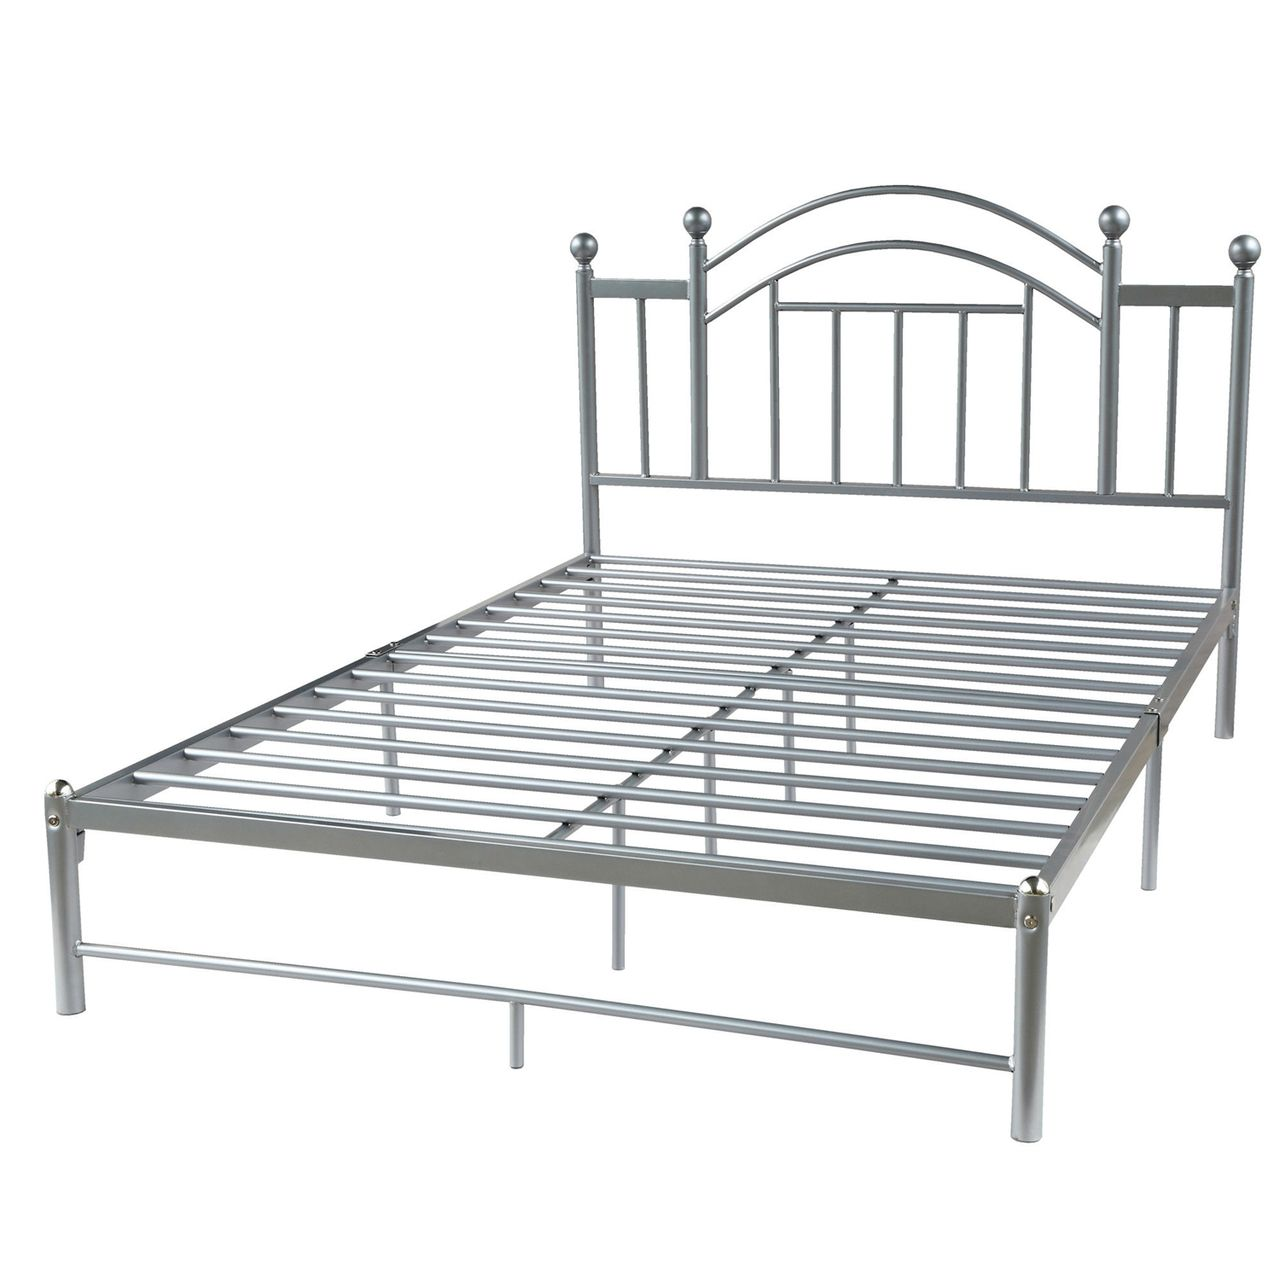 Queen Size Metal Platform Bed Frame With Headboard In Silver